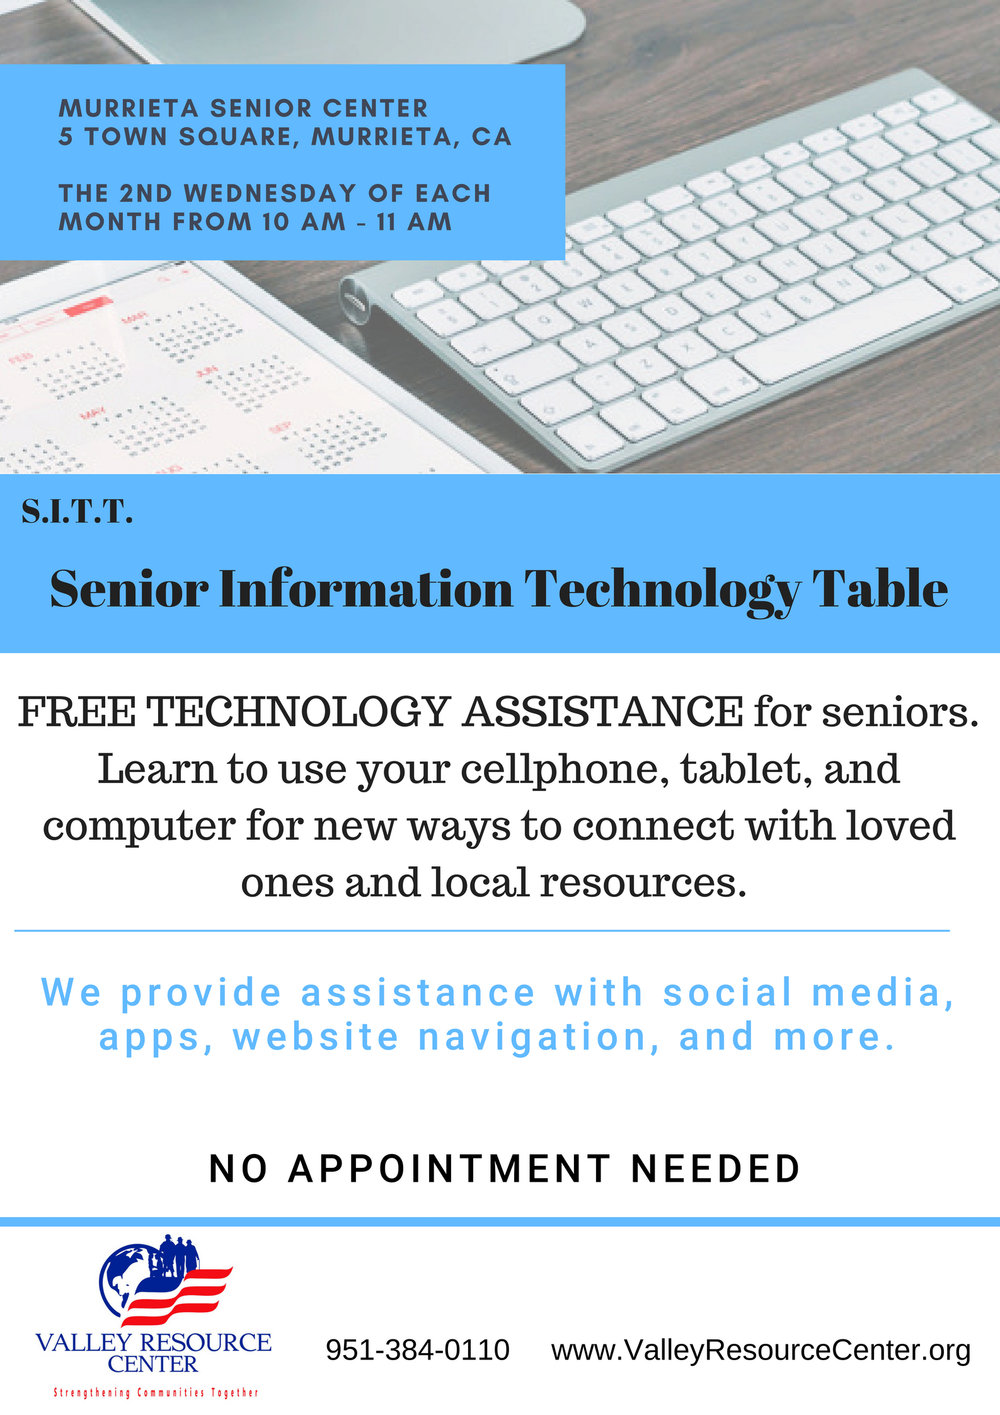 Technology Assistance - The Valley Resource Center - Senior Information Technology Table (S.I.T.T.) offers a FREE technology assistance program for local senior citizens to learn the use of computers and cellphones. This is a great opportunity for members of the senior community to connect with loved ones as well as access a wide array of resources. We provide assistance with navigating your cellphone, social media, working with apps, website navigation, and more. Our goal is to empower older adults by connecting them to community resources to help them live connected and fulfilling lives.Senior Information Technology Tables (S.I.T.T.'s) are held at the Murrieta Senior Center the 2nd Wednesday of each month from 10:00 am-11:00 am. No appointment needed. The Valley Resource Center is a nonprofit, 501c3 organization. For more information, please call 951-384-0110.www.valleyresourcecenter.org